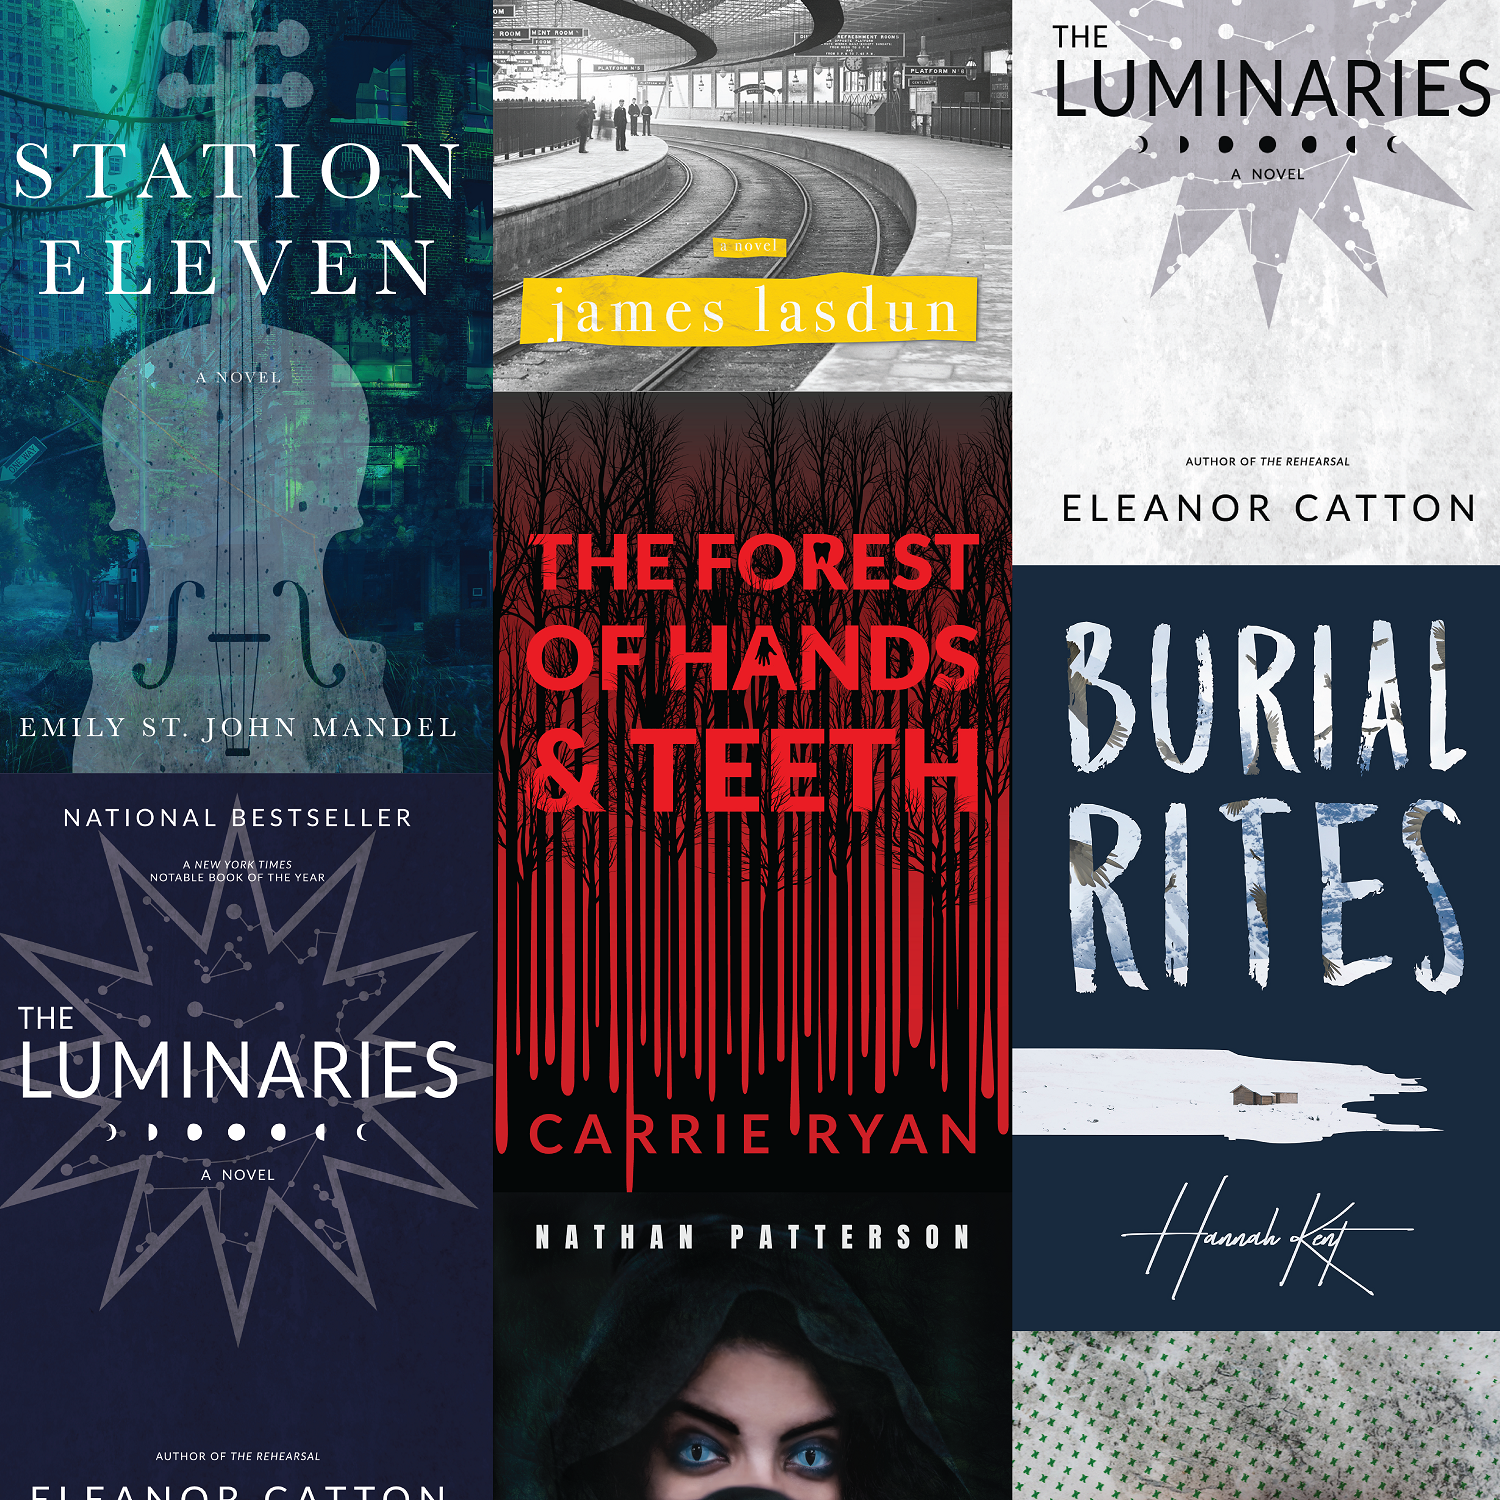 A Collection of Redesigned Covers